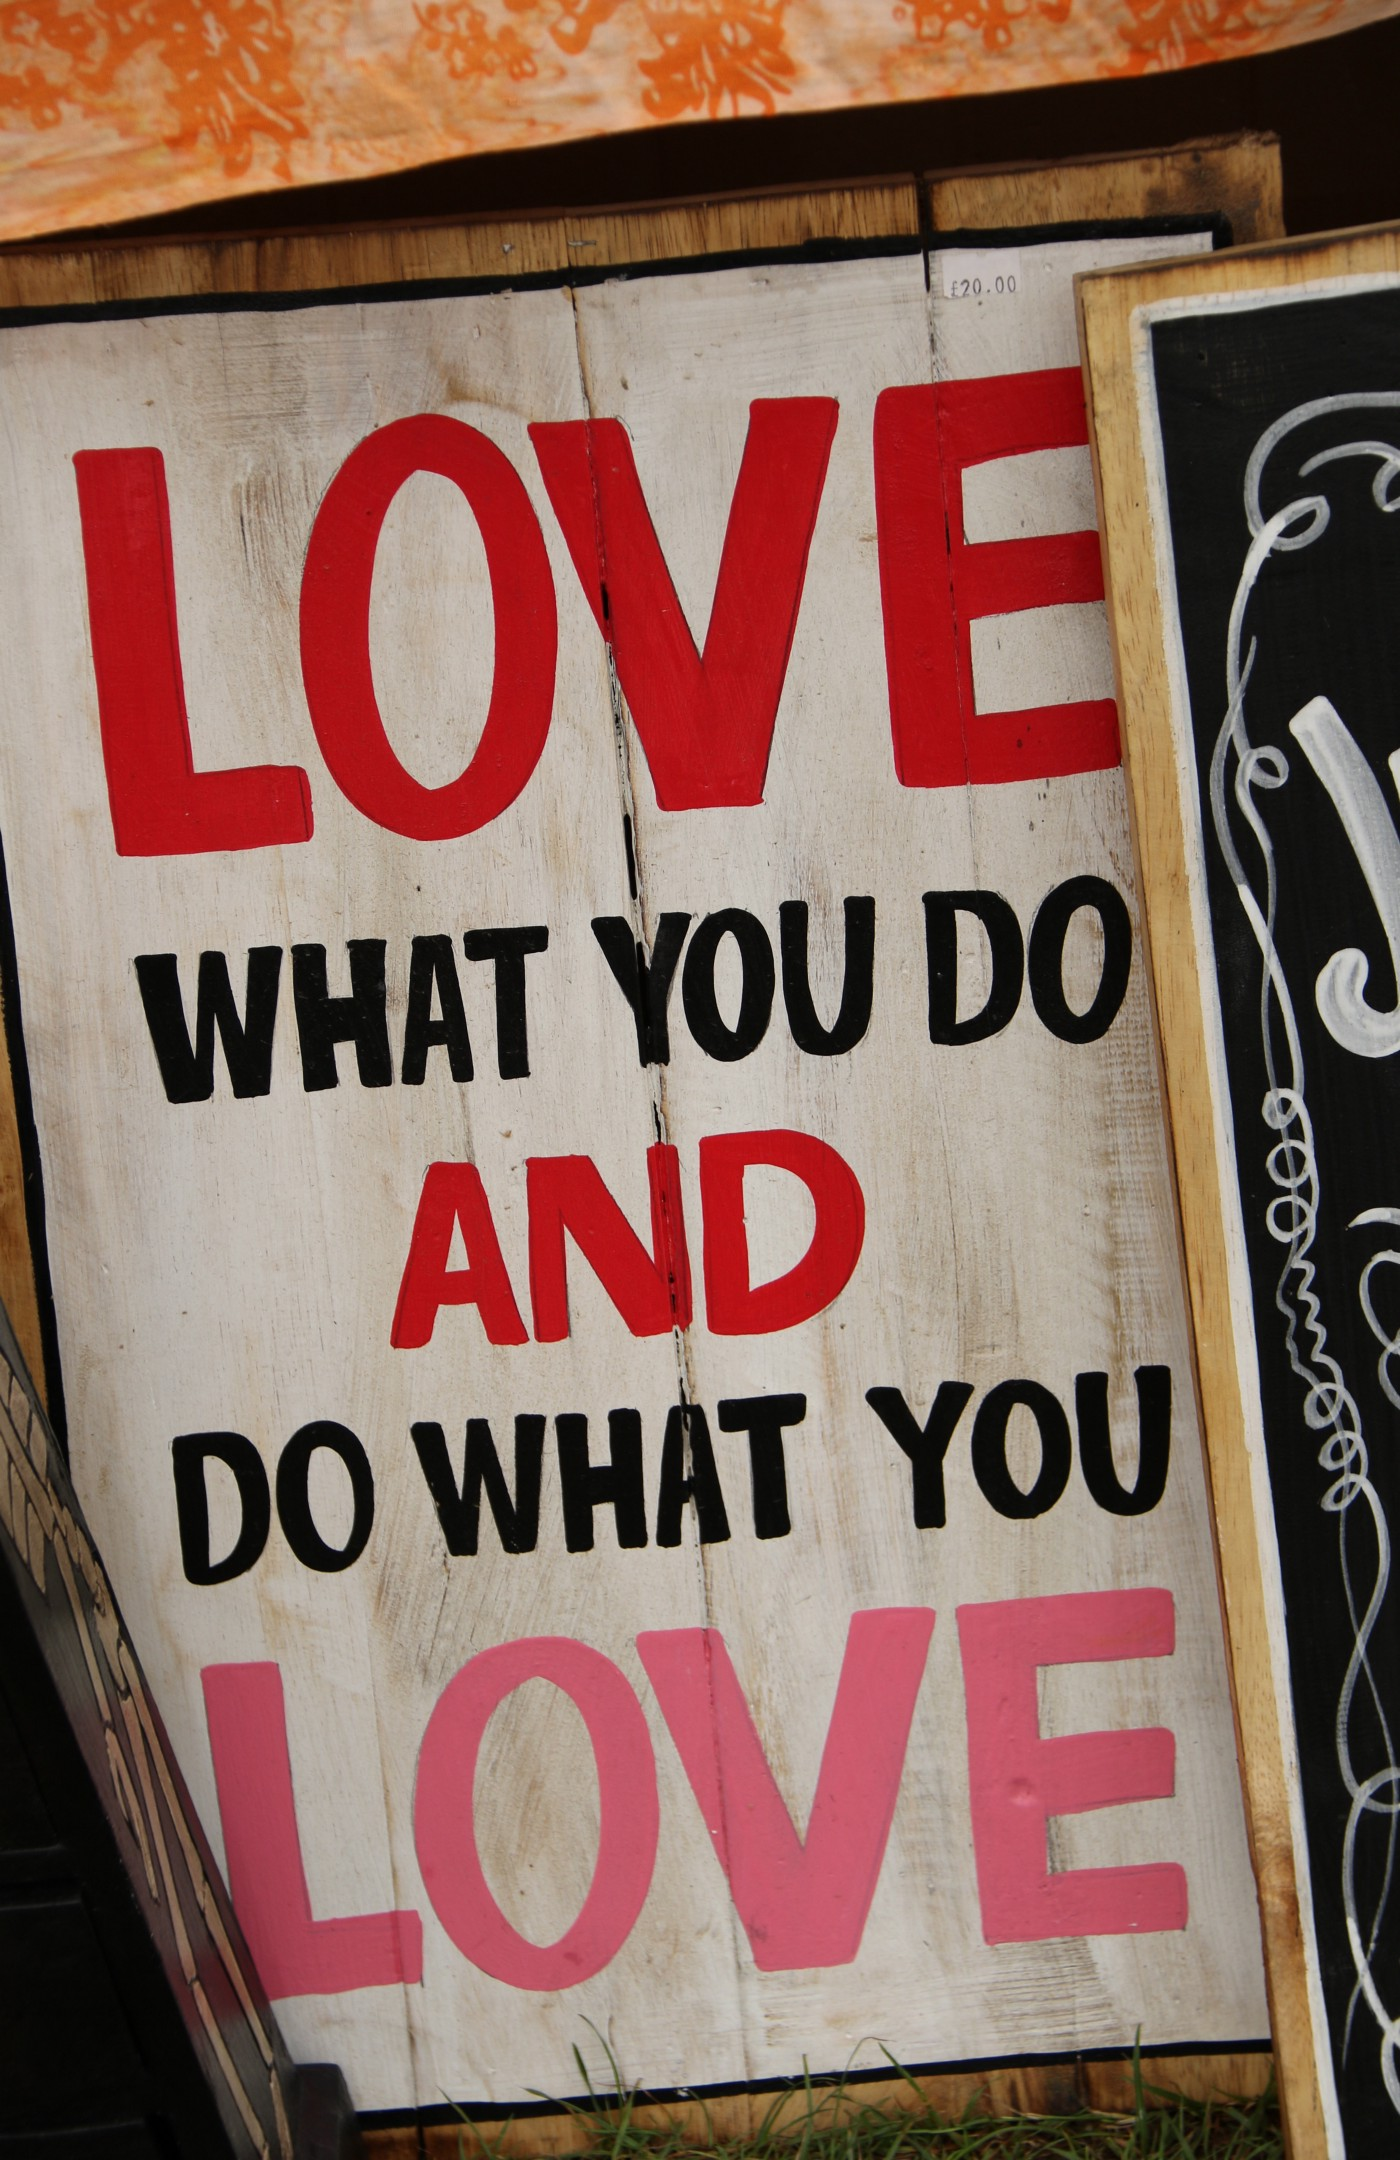 Author Sarra Cannon speaks to this virtue to help you believe you can love what you do and do what you love daily.